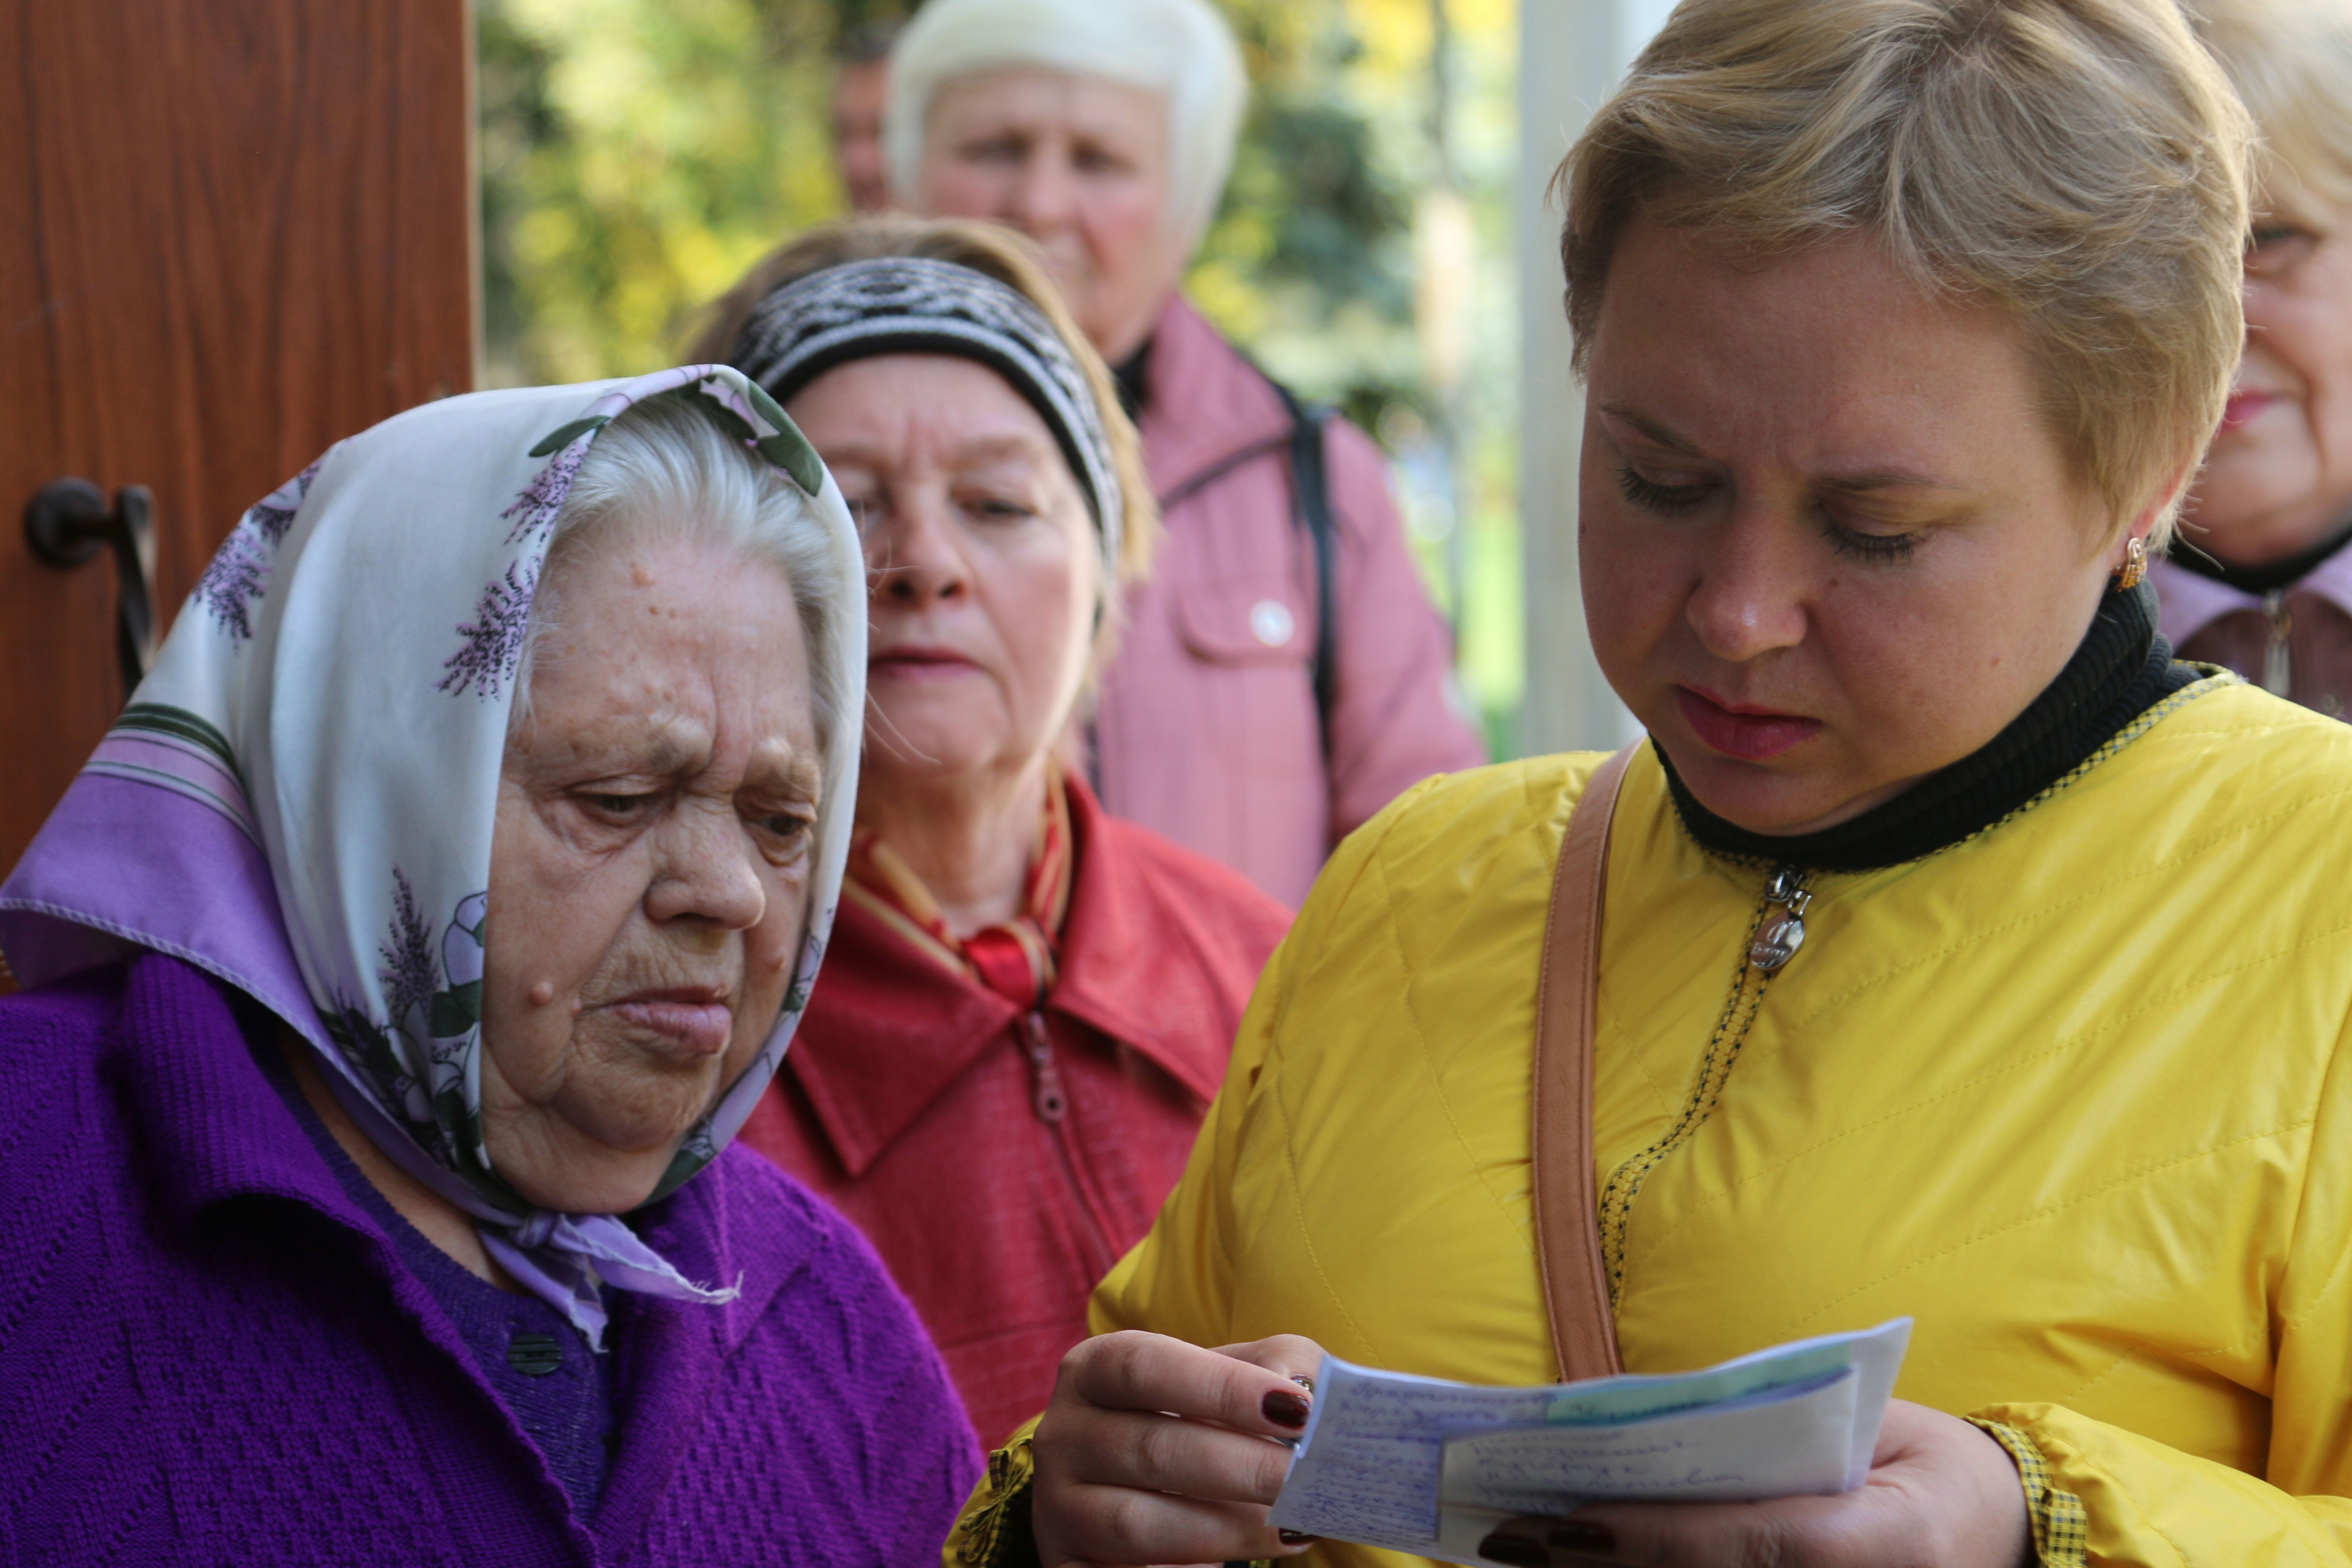 Displaced persons wait in line to receive U.N. food vouchers at a distribution center in Kurakhovo, Ukraine.